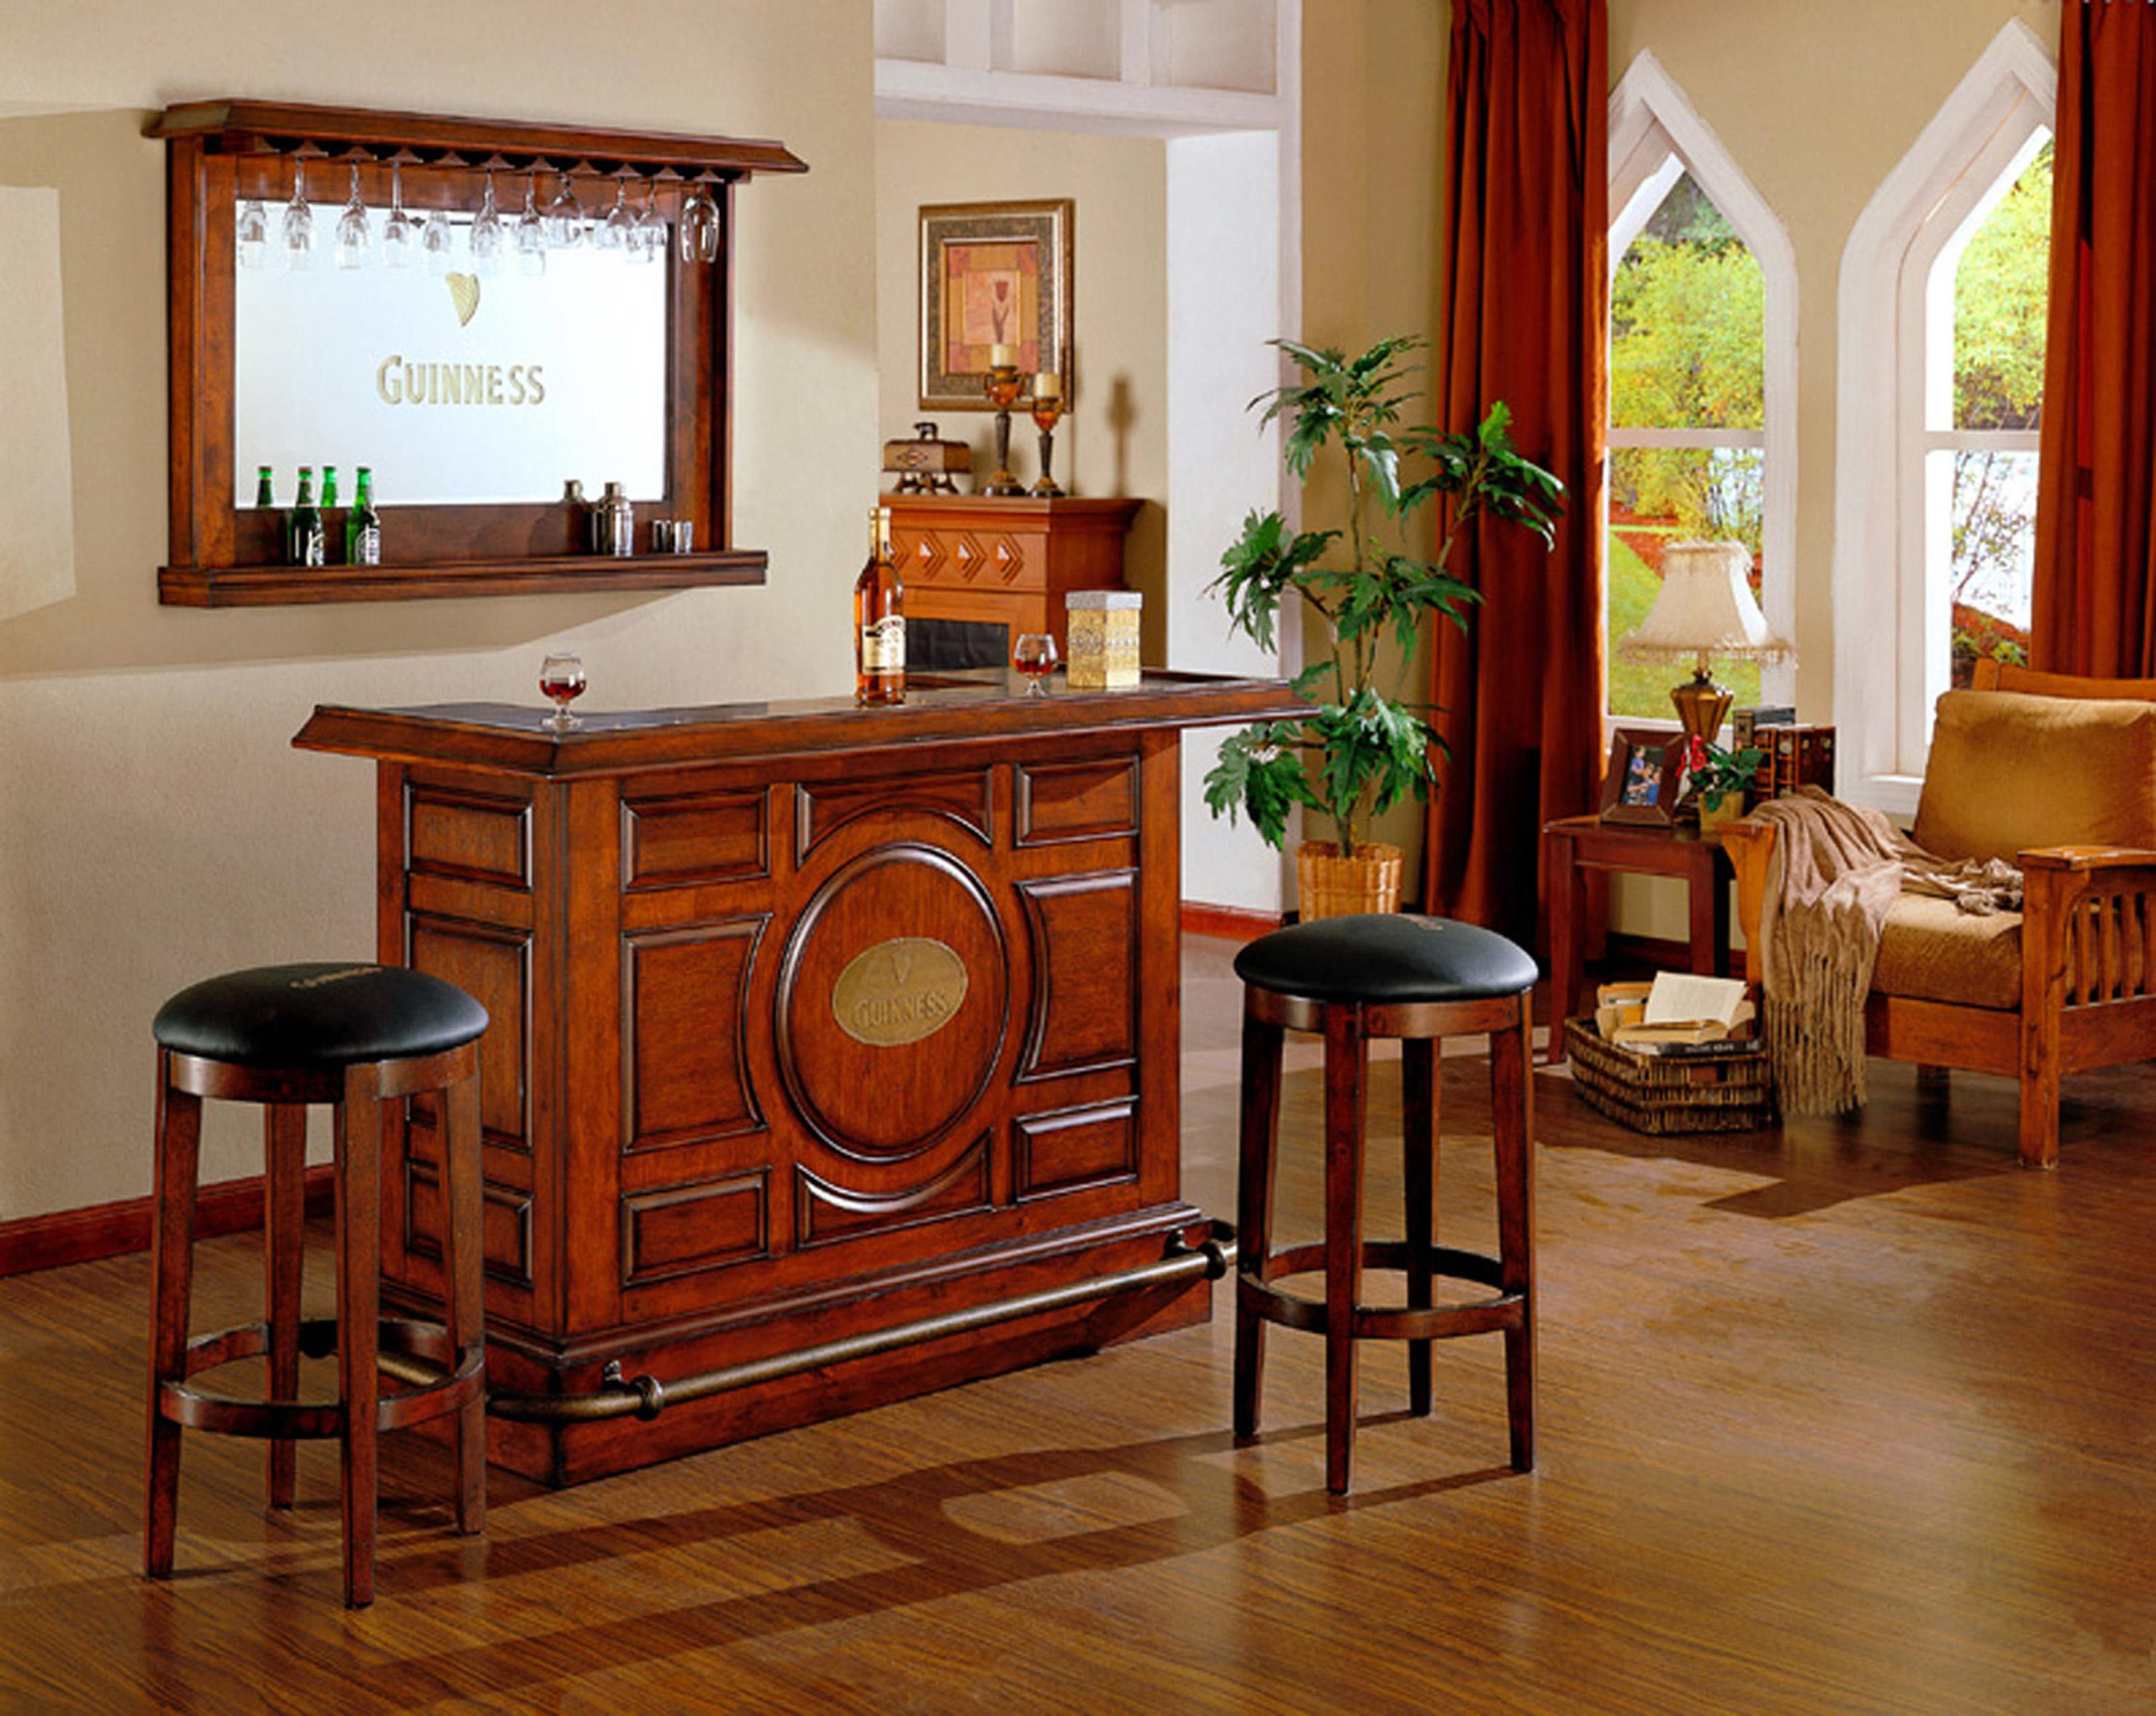 E C I Furniture Bars Guinness Bar With Etched Logo Mirror Dunk Bright Furniture Bars